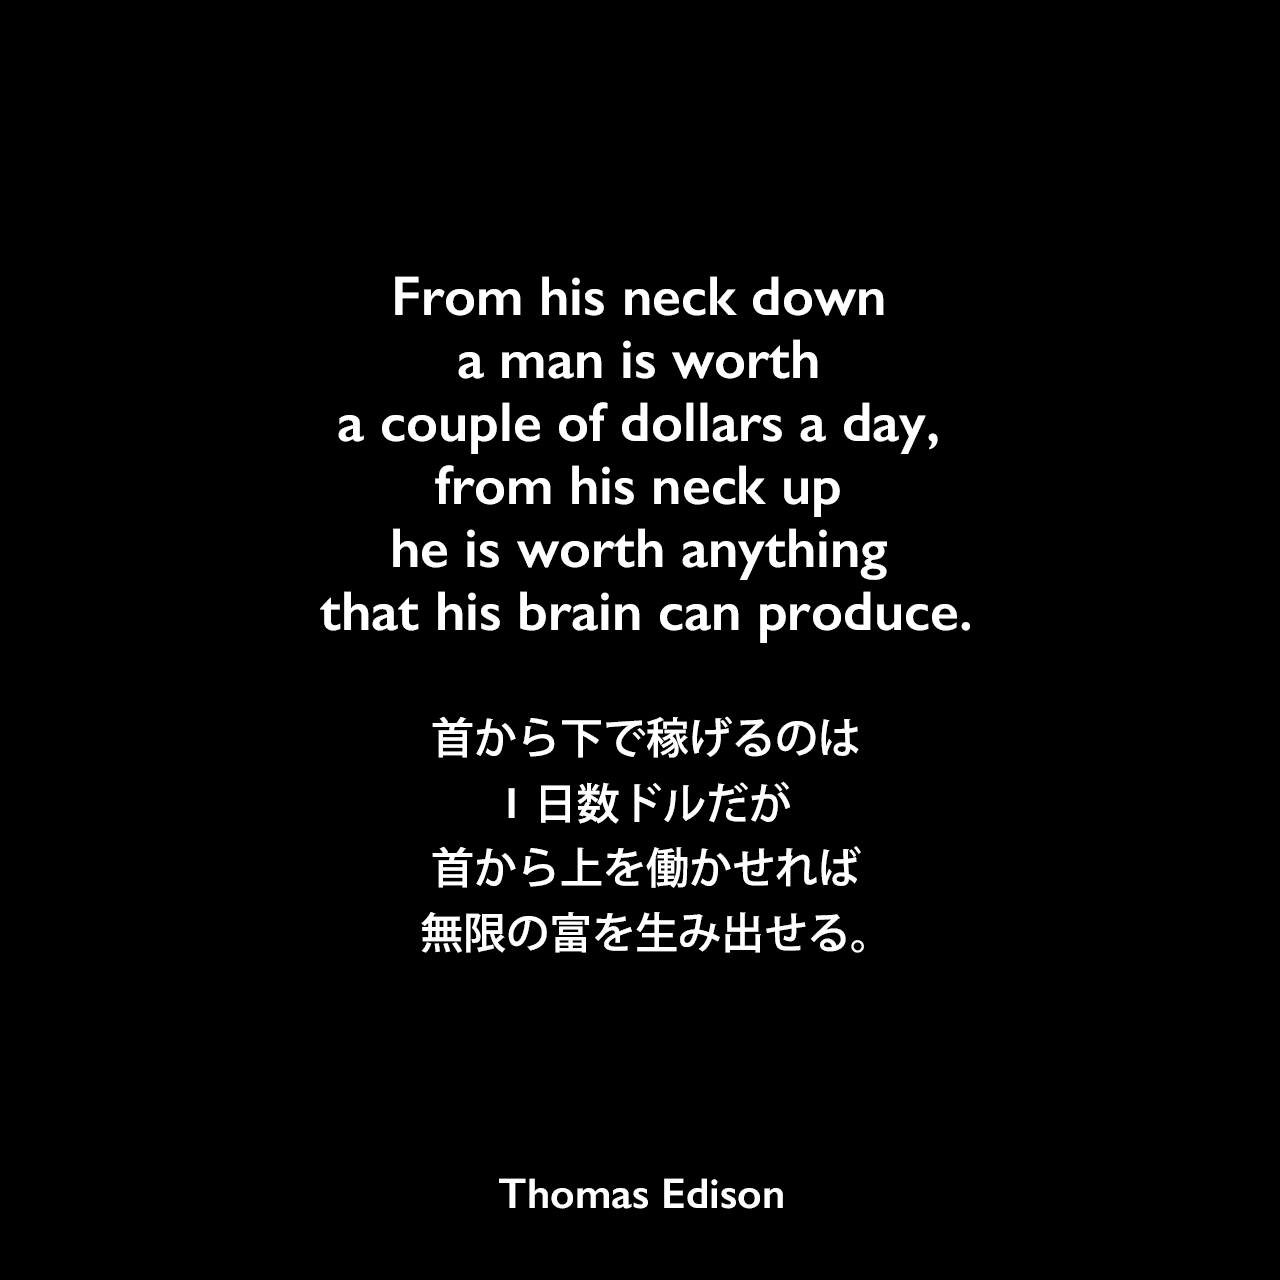 From his neck down a man is worth a couple of dollars a day, from his neck up he is worth anything that his brain can produce.首から下で稼げるのは1日数ドルだが、首から上を働かせれば無限の富を生み出せる。Thomas Edison